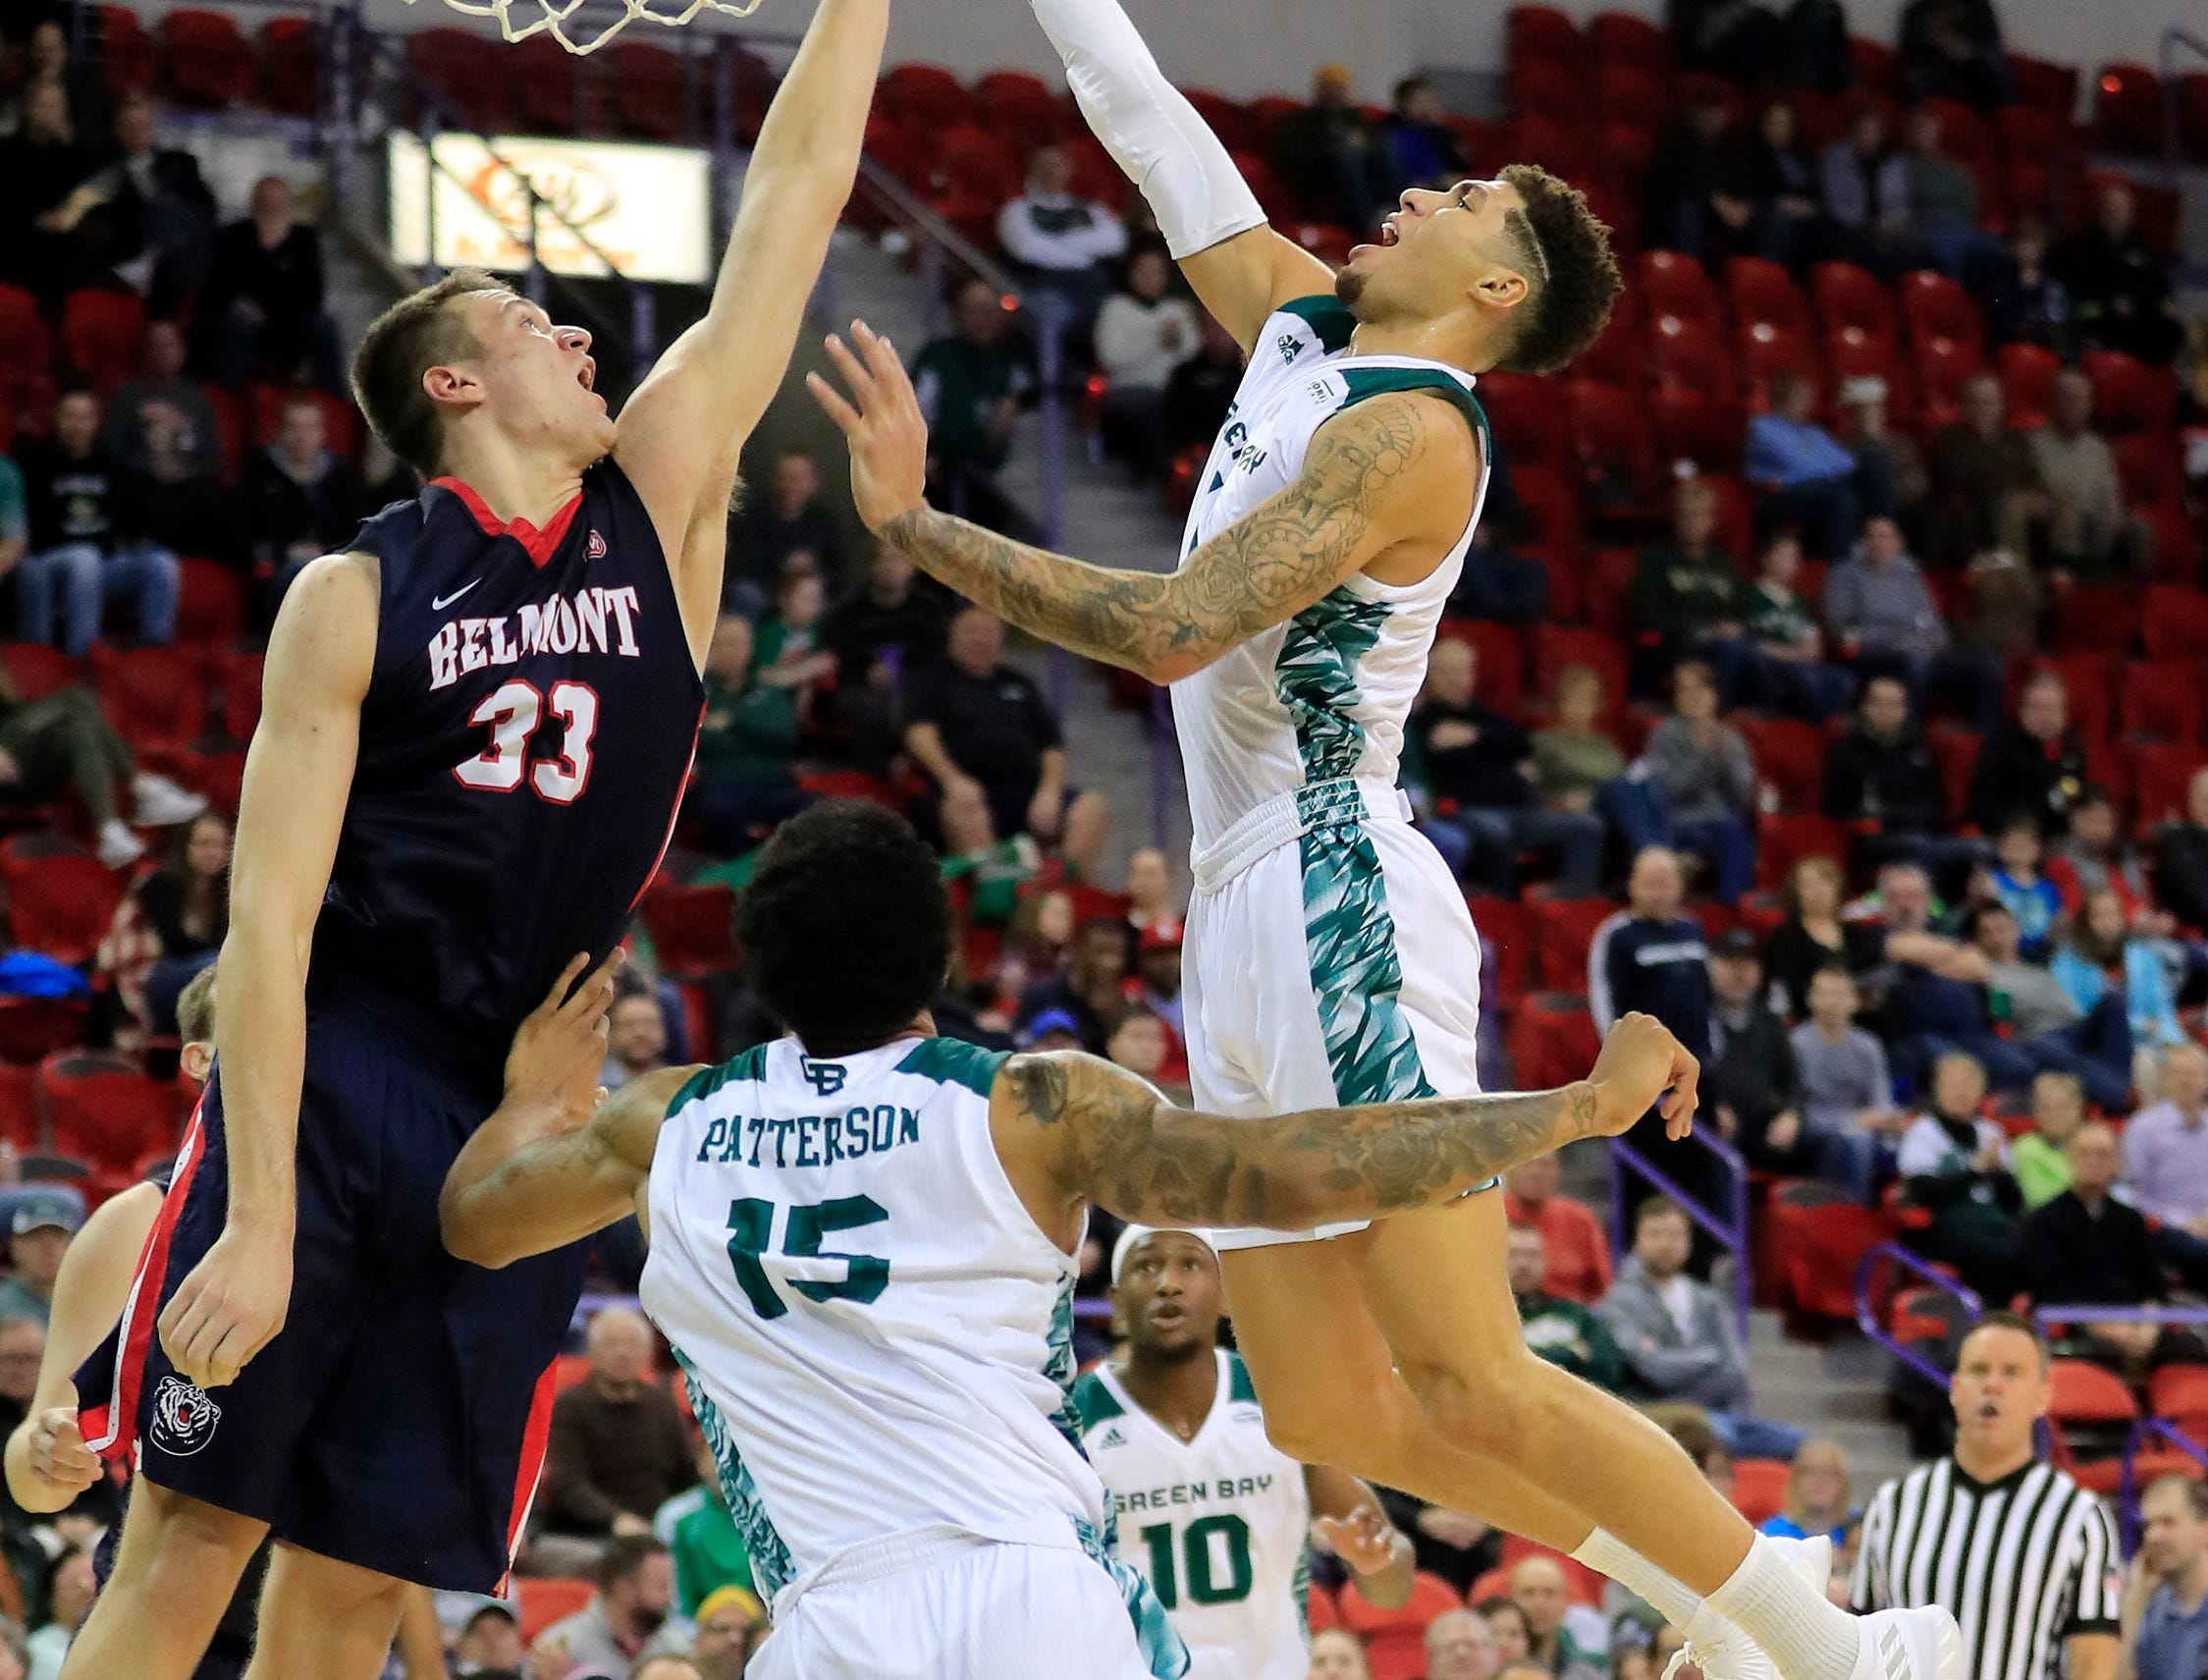 Green Bay Phoenix guard Sandy Cohen III (1) draws a foul on Belmont Bruins center Nick Muszynski (33) in a NCAA basketball game at the Resch Center on Saturday, December 1, 2018 in Ashwaubenon, Wis.